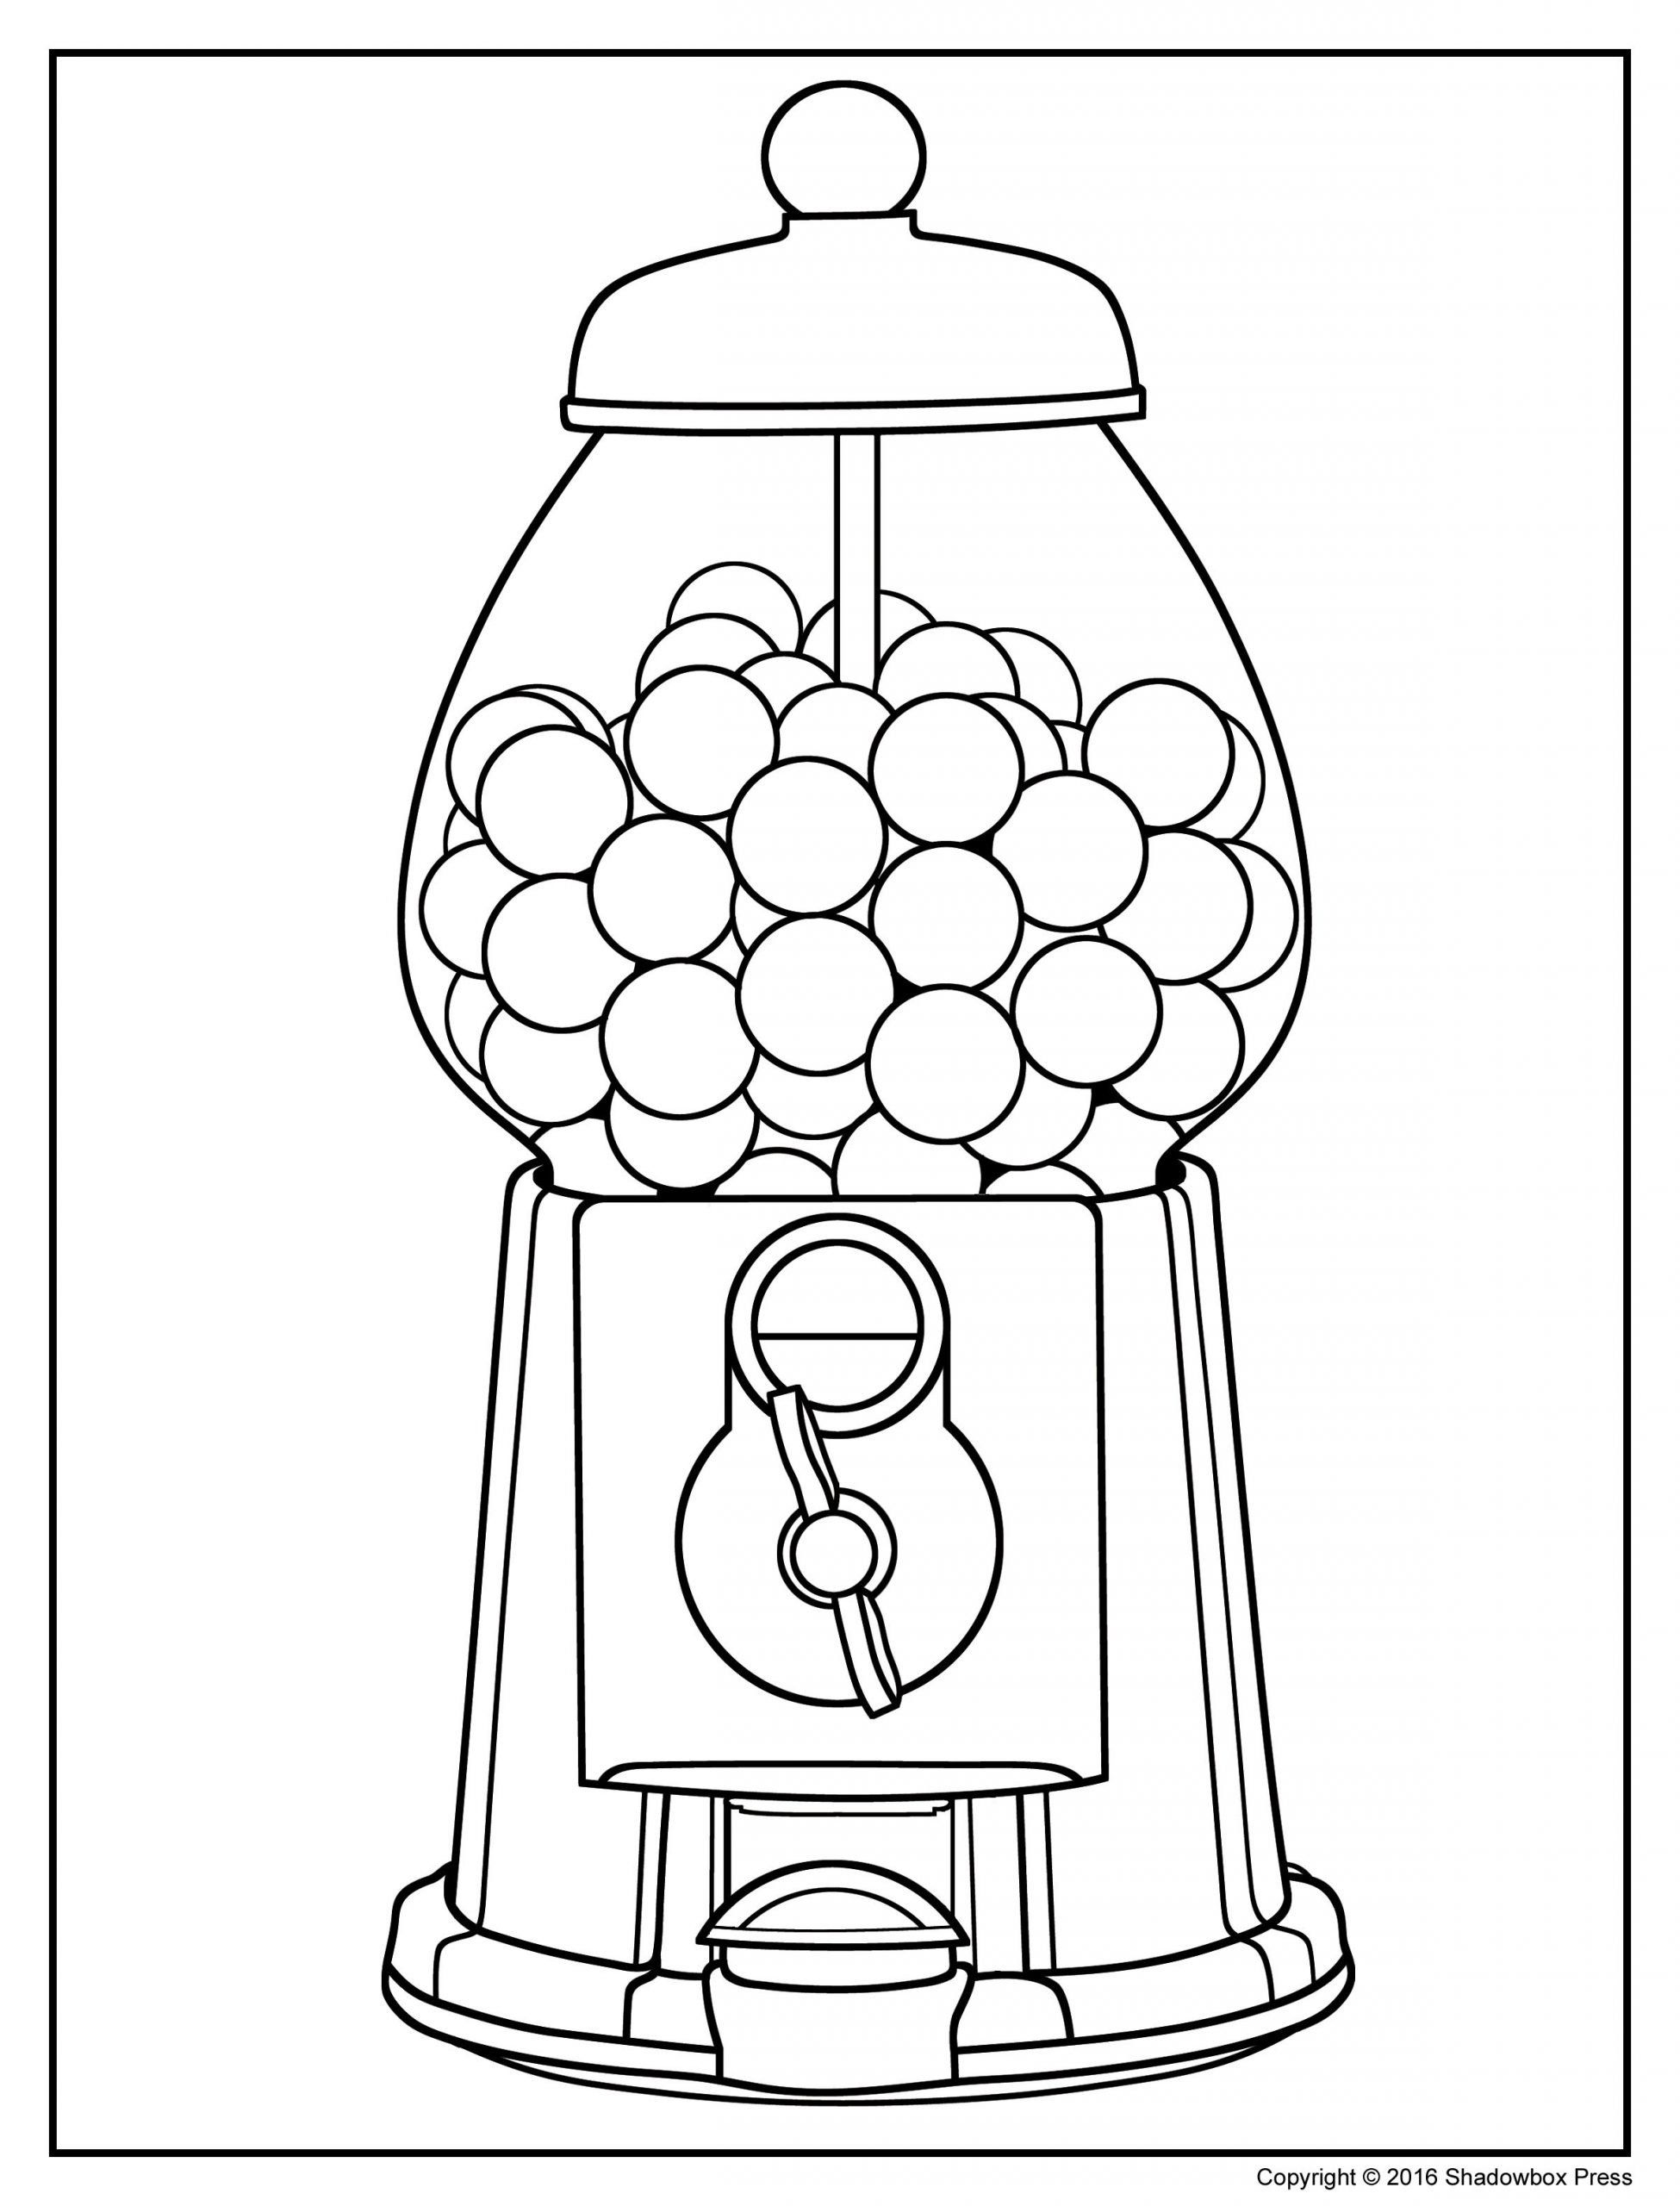 Coloring Pages For Seniors Coloring Pages For Seniors At Getdrawings In 2020 Easy Coloring Pages Cute Coloring Pages Cool Coloring Pages